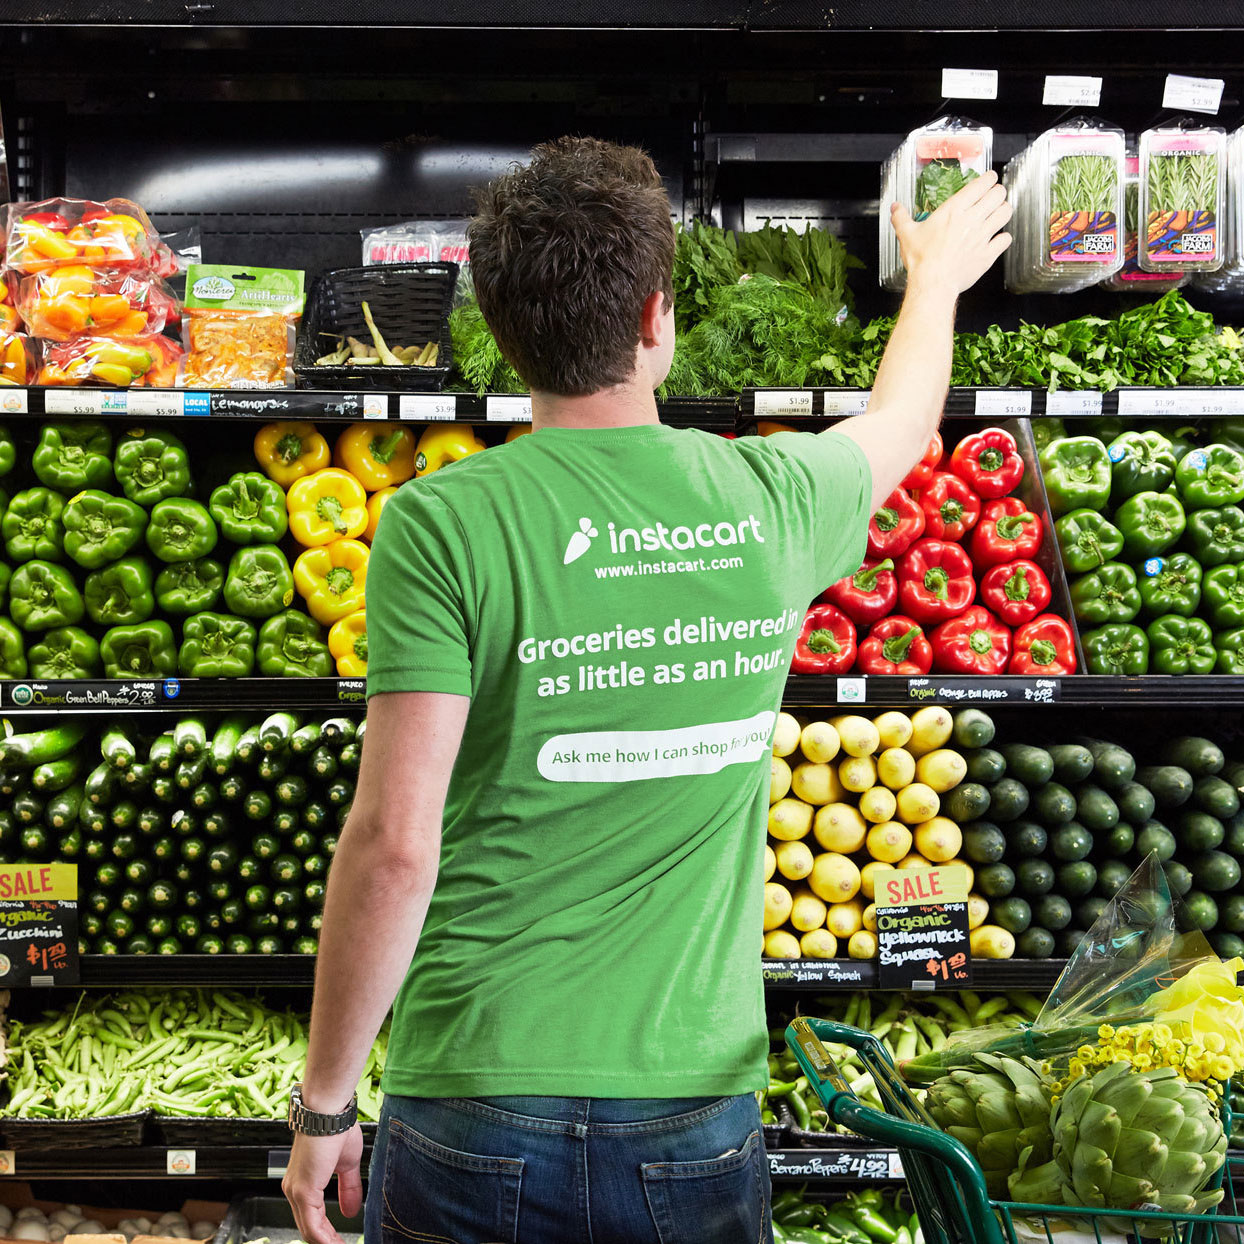 Instacart Shopper picking out produce